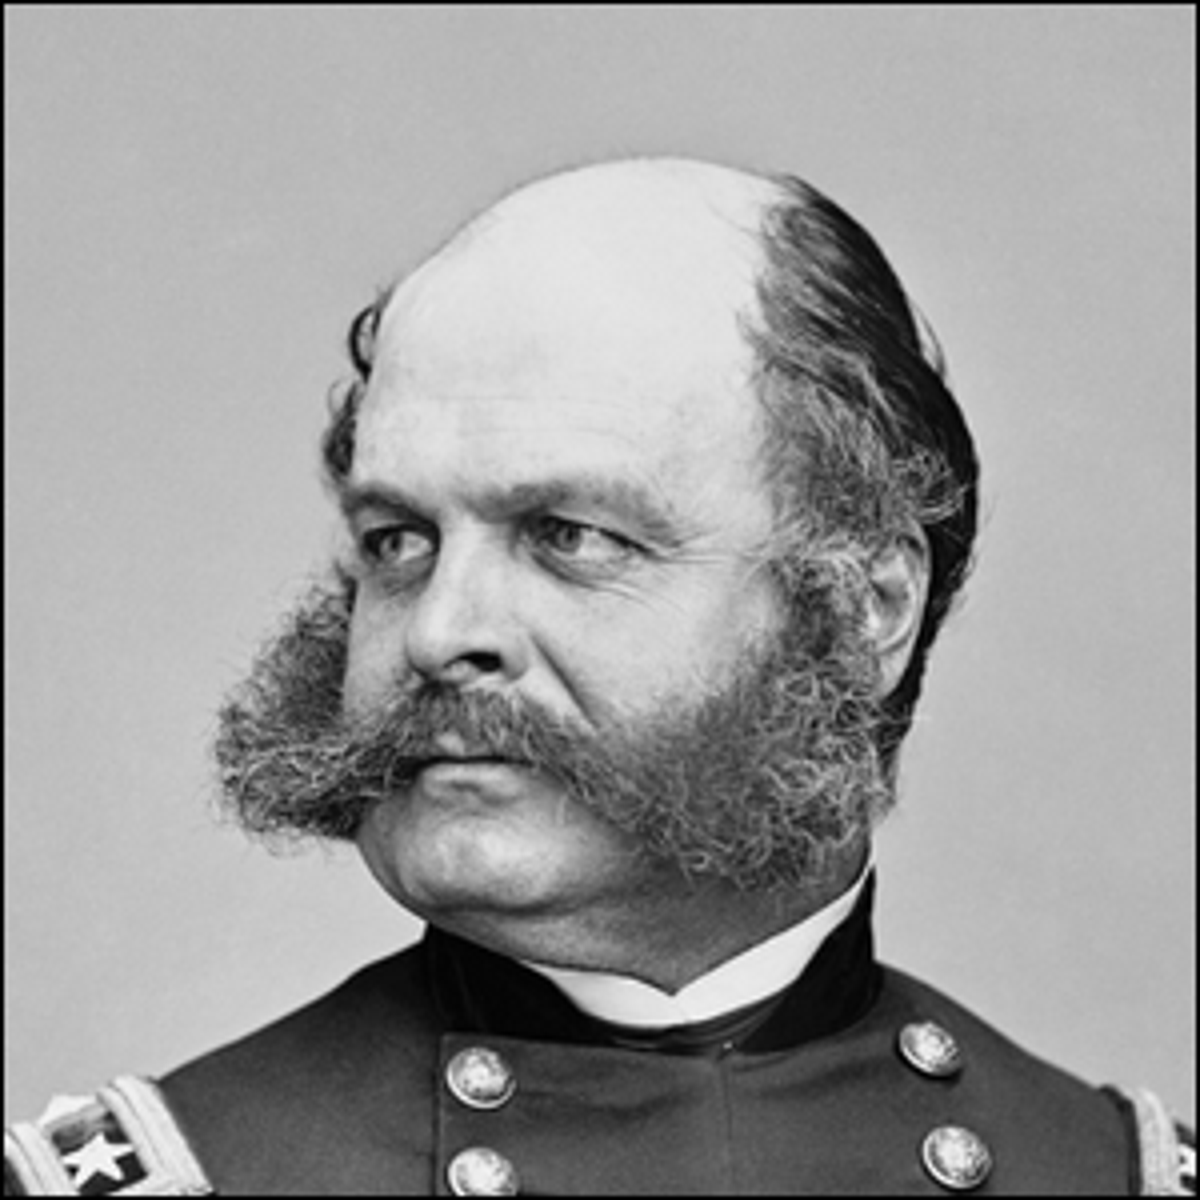 A portrait of Major General Ambrose E. Burnside.